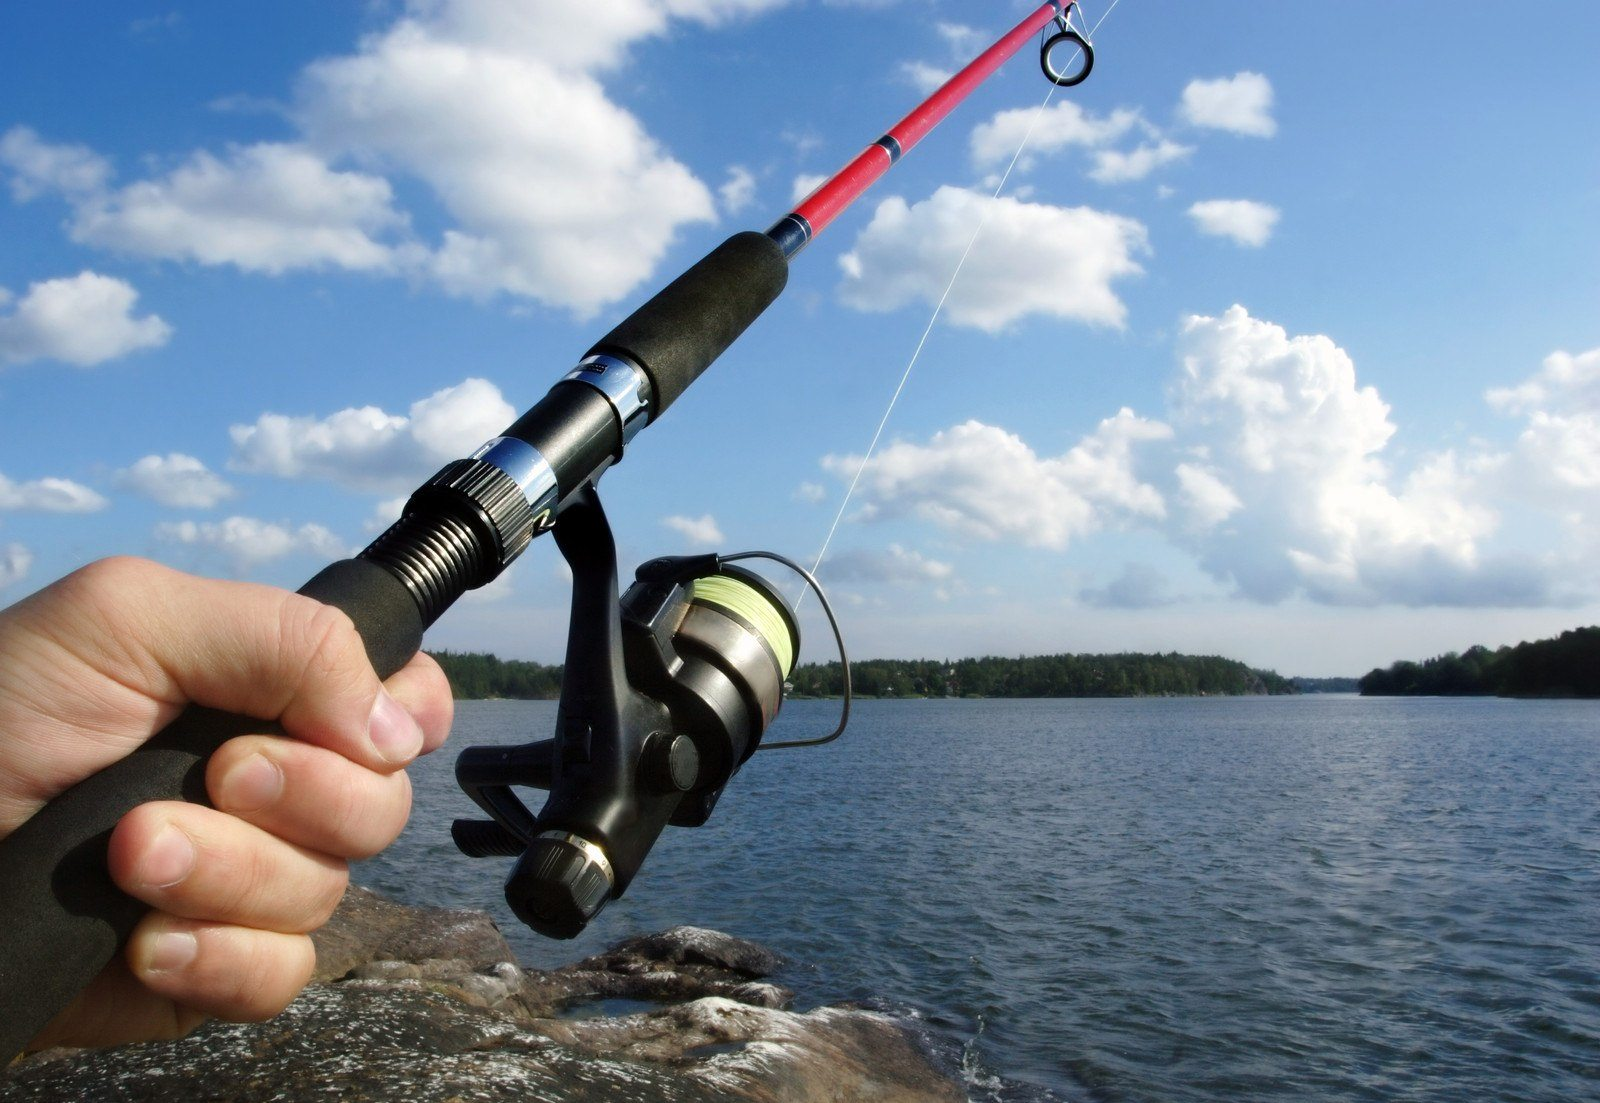 Easy Tutorial on How to Fish: Lessons for a Beginner Angler